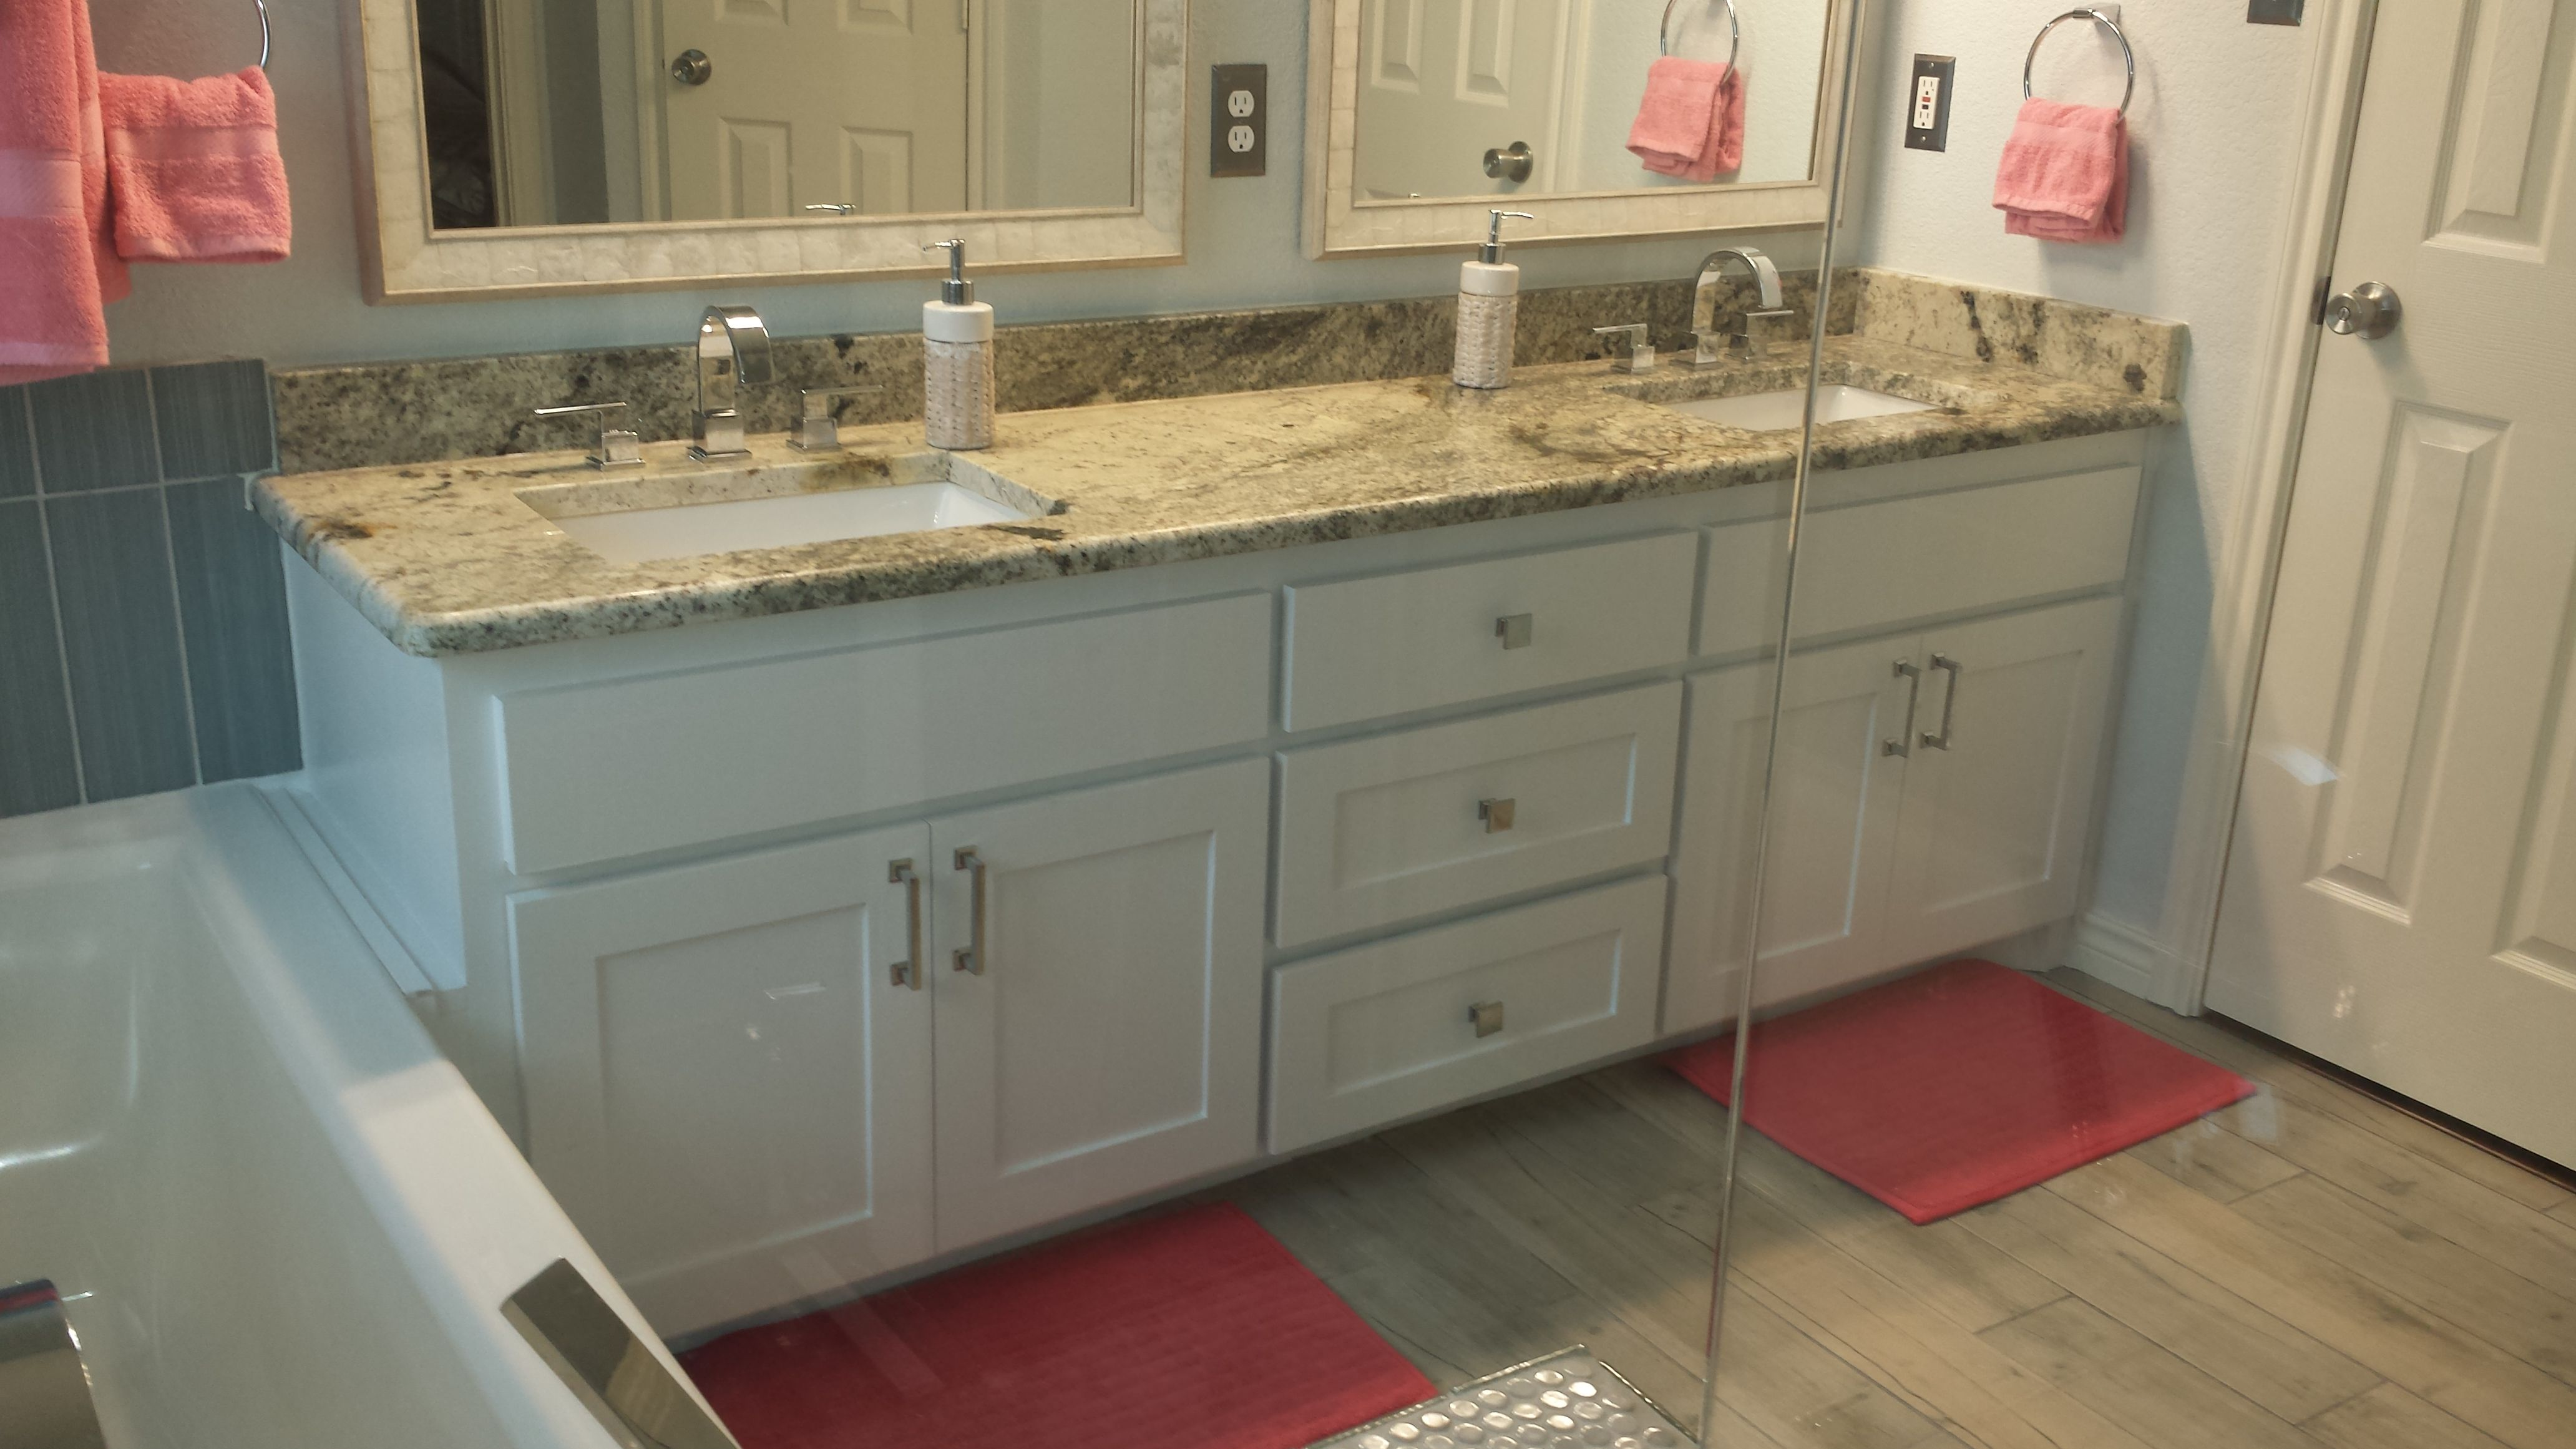 84 Inch Double Custom Hardwood Vanity Painted In Sherwin Williams